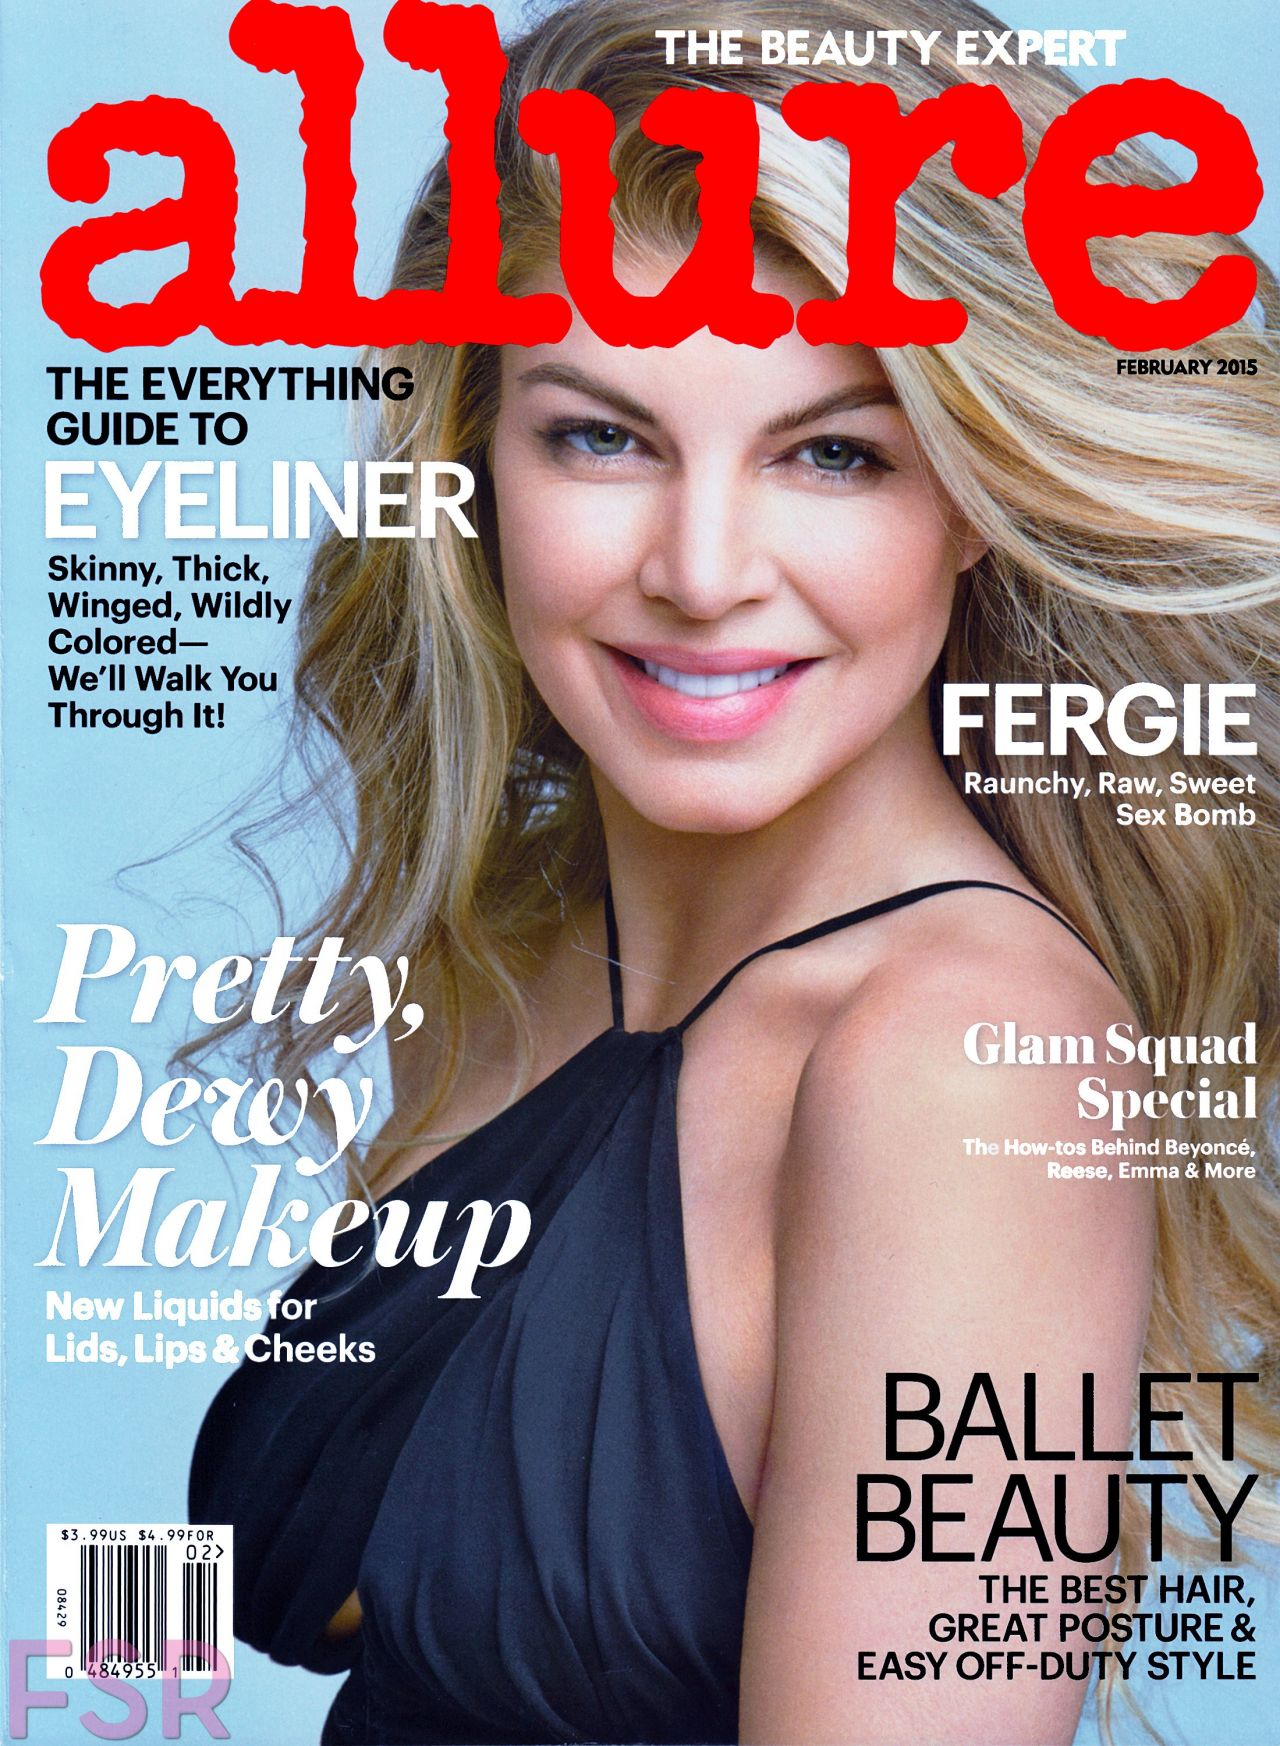 allure fergie magazine february covers stacy ferguson duhamel cleavage josh bikini mag curious waxes marriage issue album talks therapy demarchelier